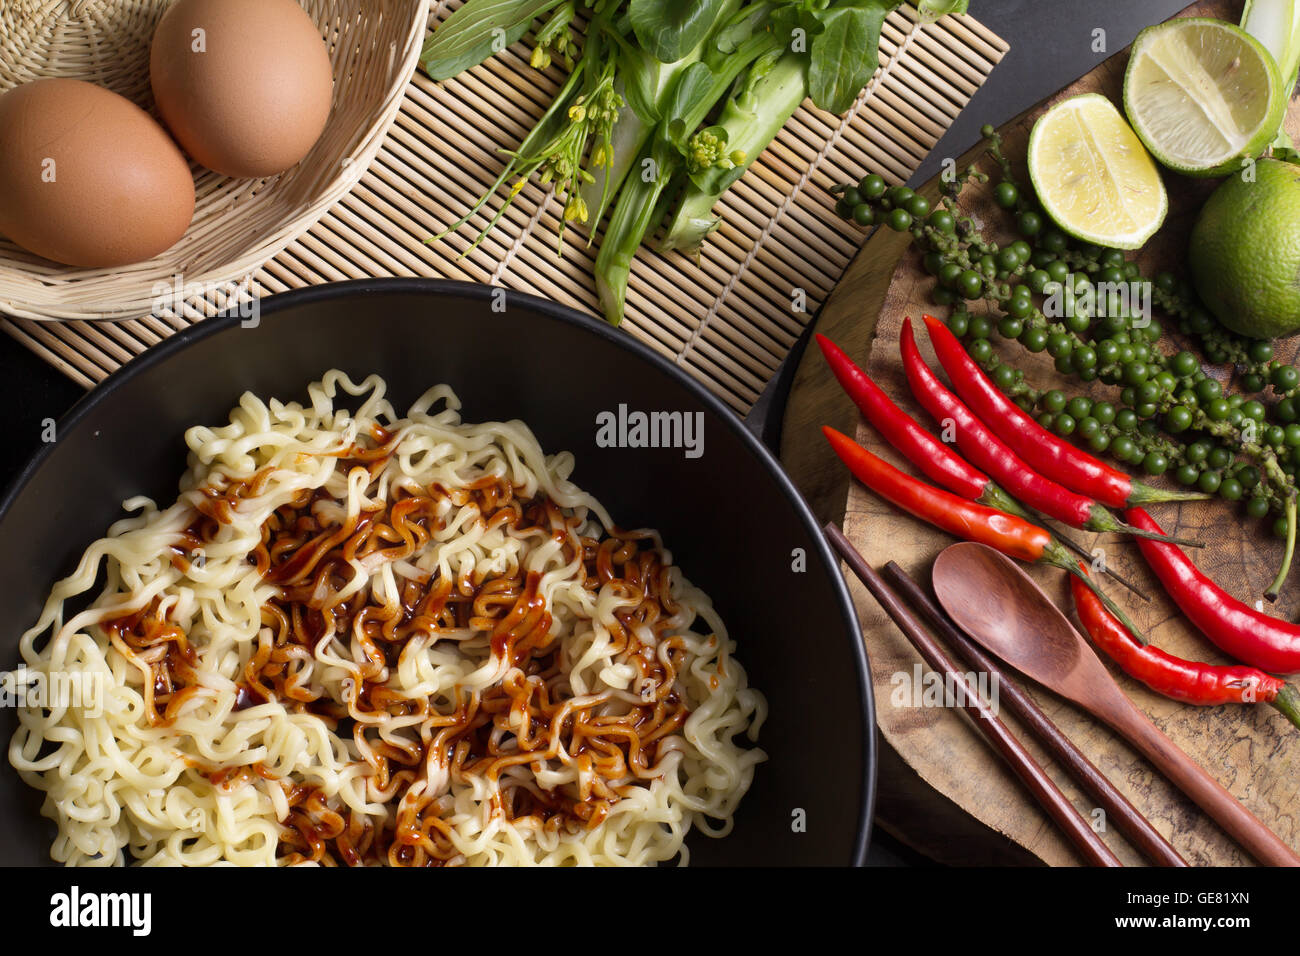 noodles in black bowl garnished on kitchen table - Stock Image